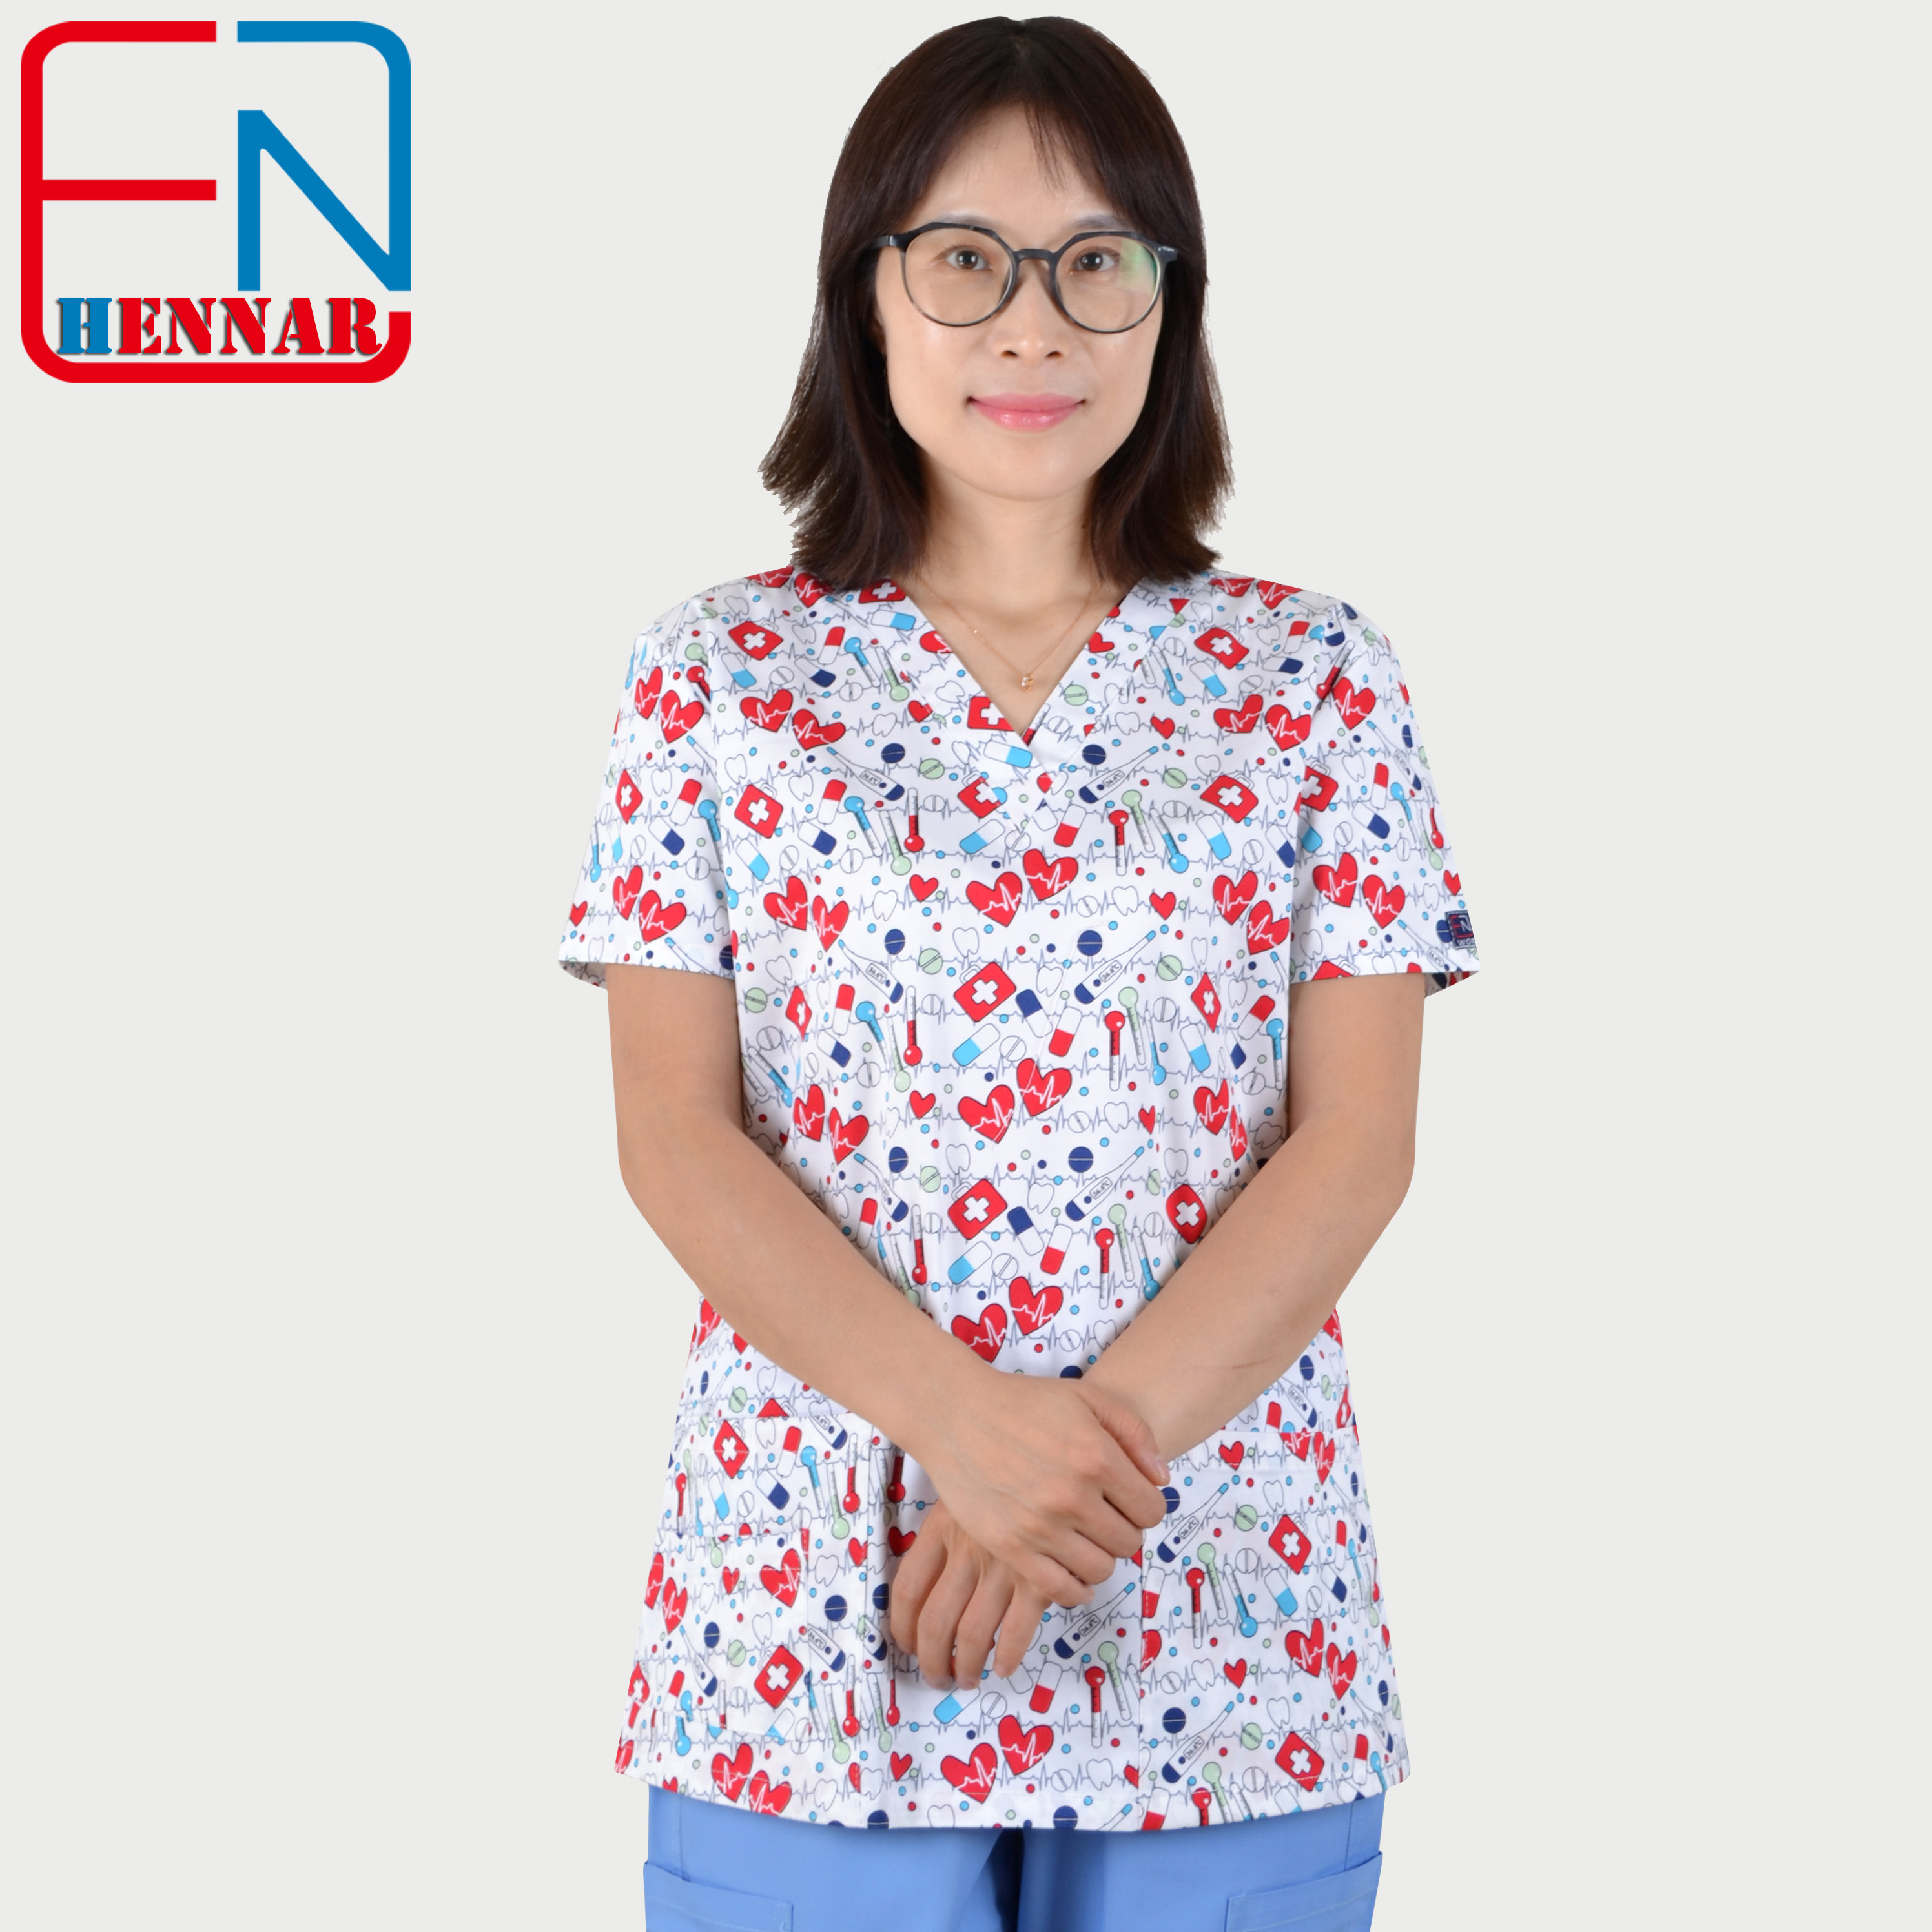 Medical Scrub Tops With Stretchy Material XXS-3XL